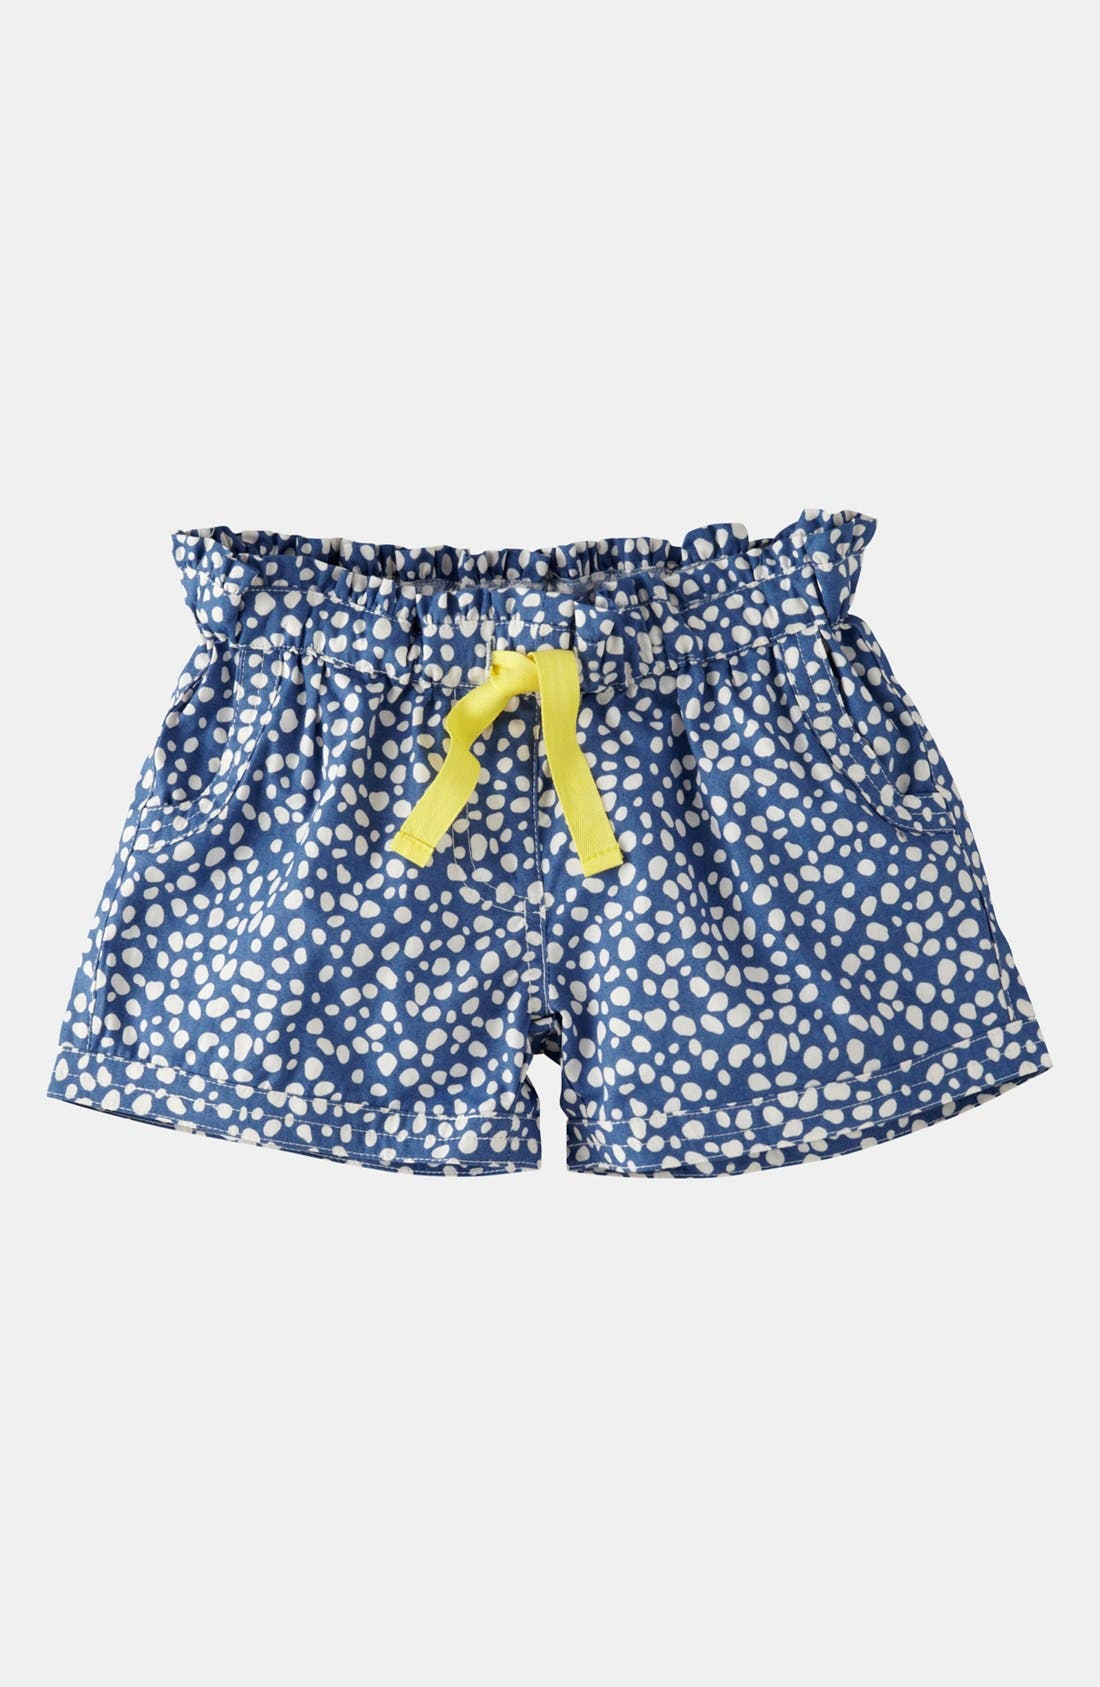 Alternate Image 1 Selected - Mini Boden 'Spotty Holiday' Shorts (Toddler)